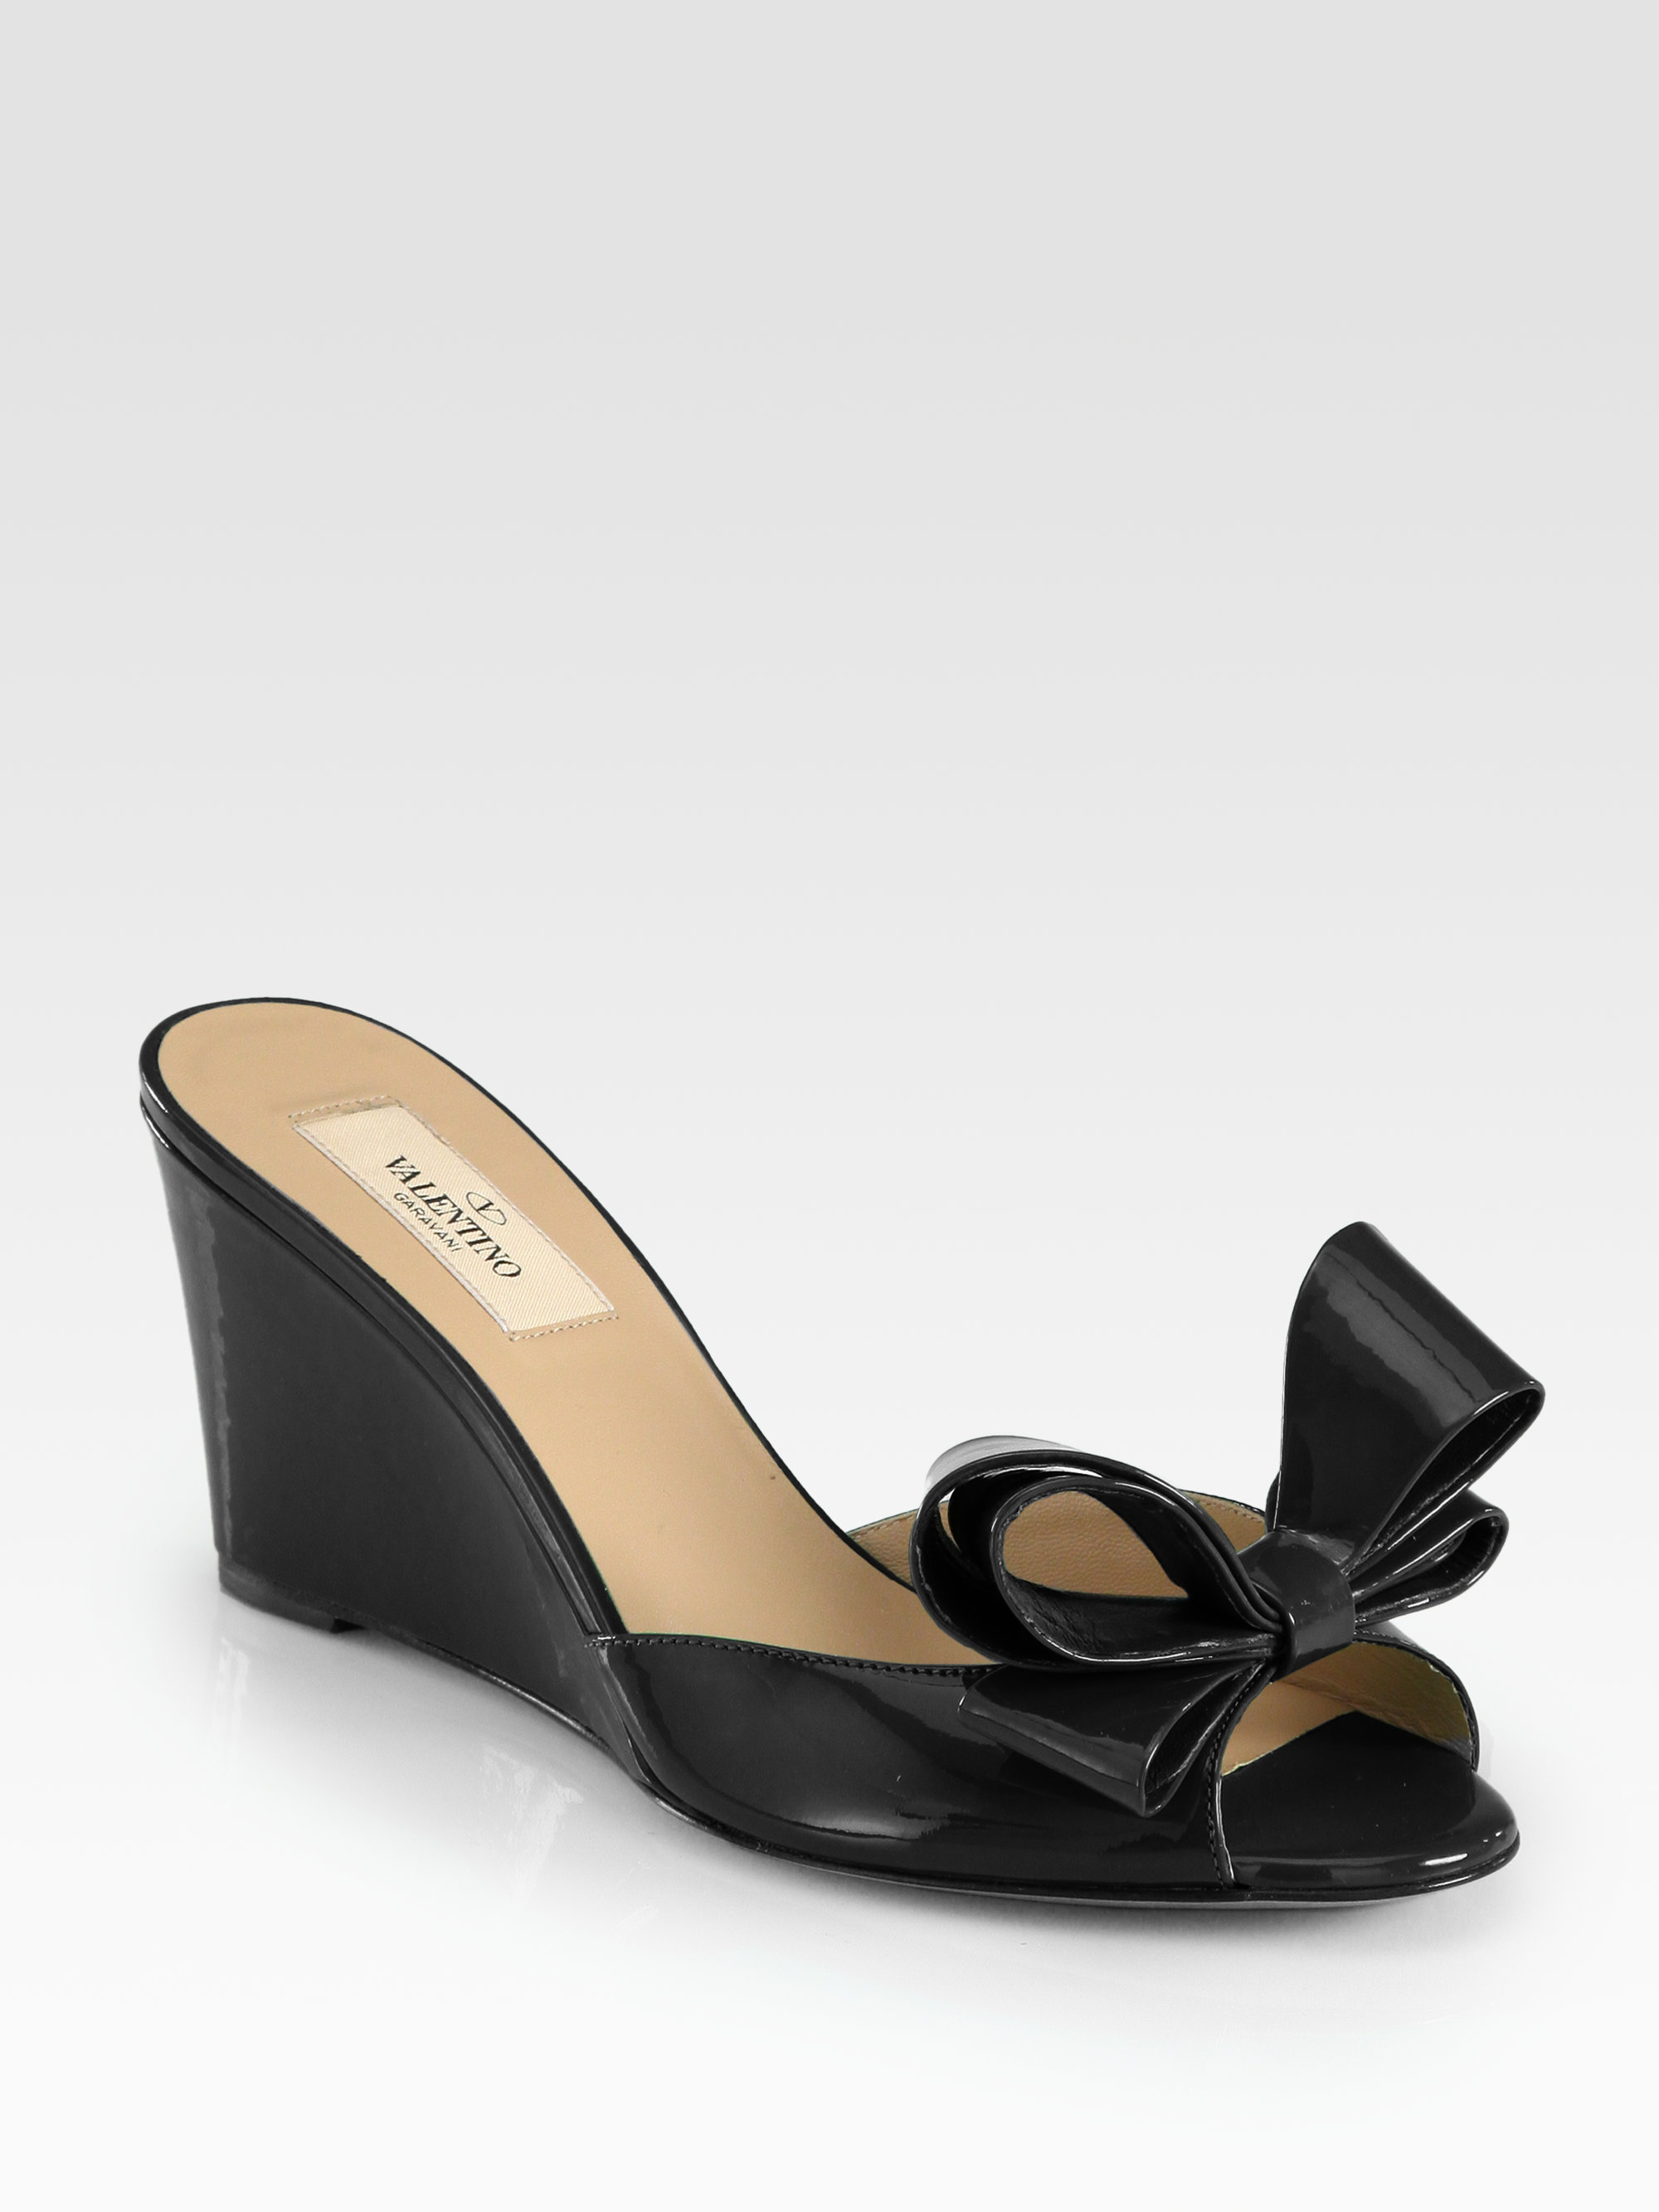 44c7aa3aab0 Lyst - Valentino Couture Patent Leather Bow Wedge Sandals in Black